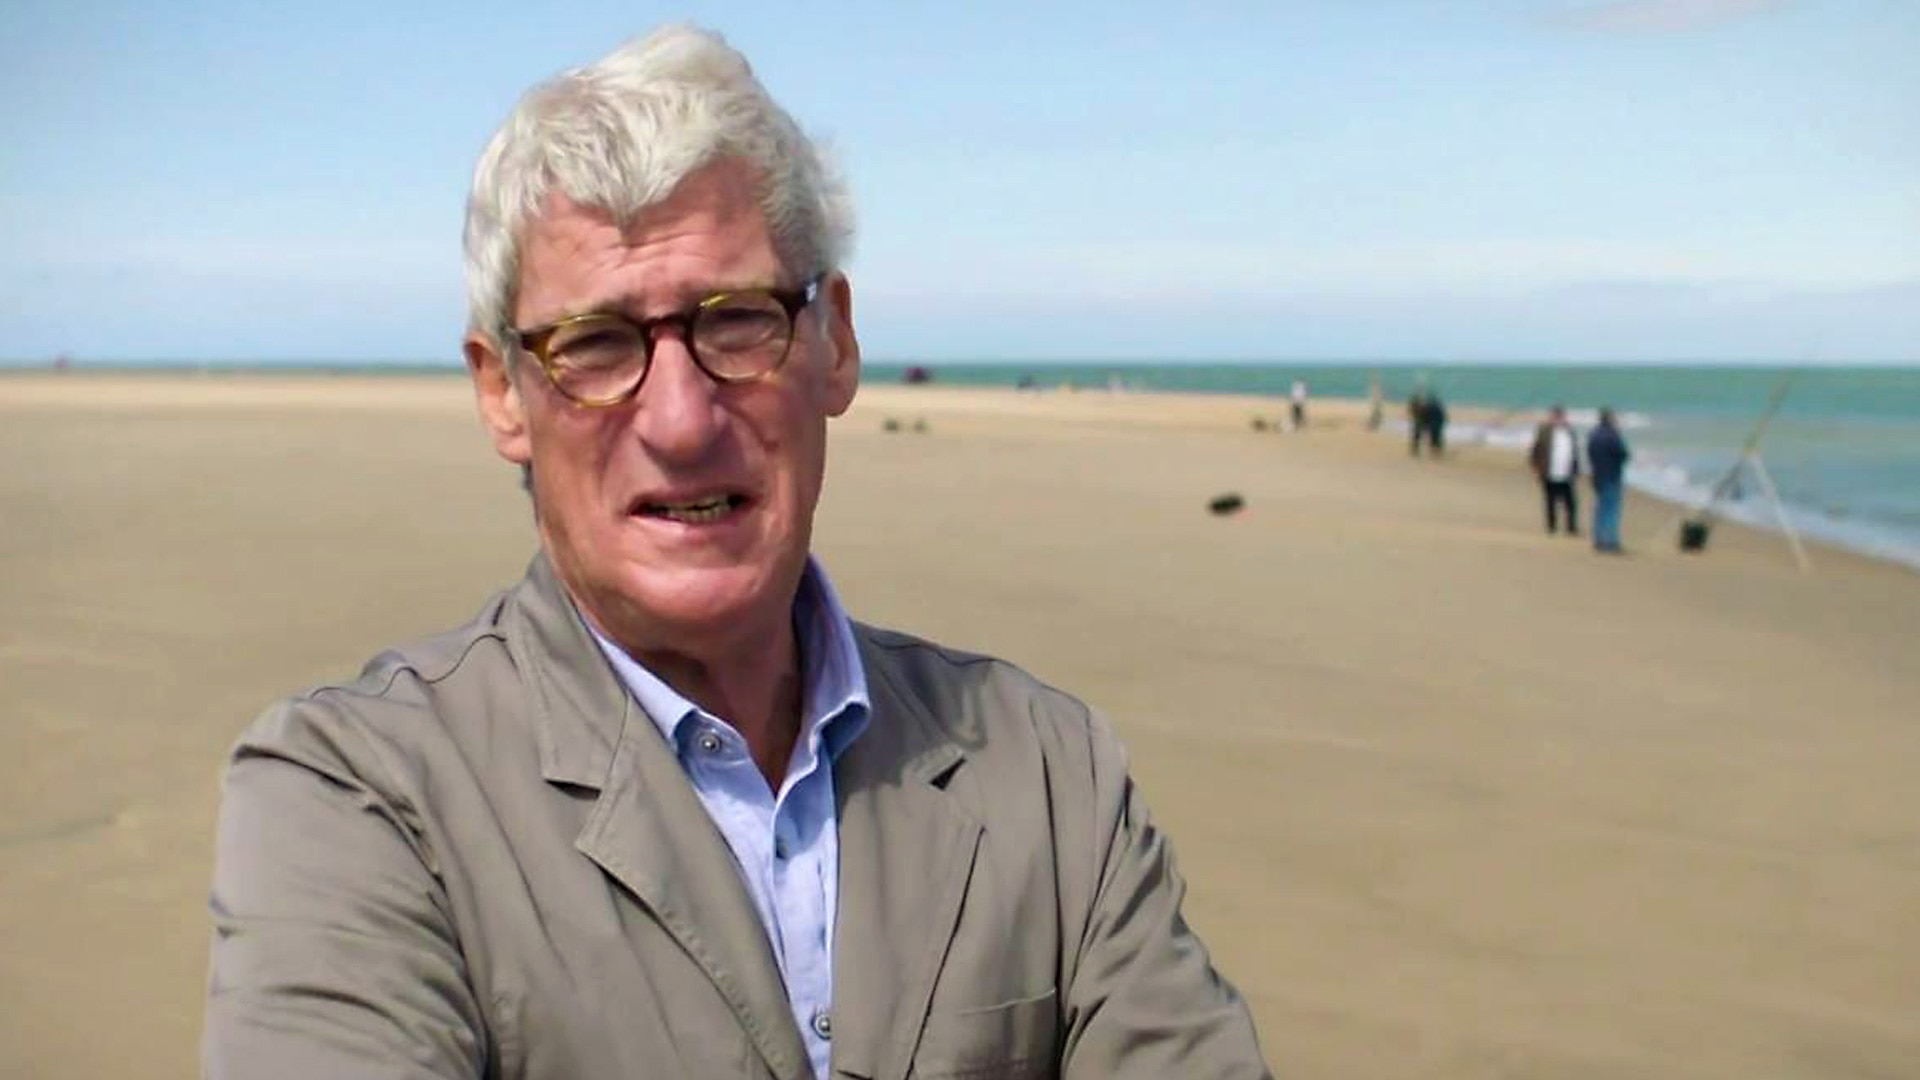 Rivers with Jeremy Paxman